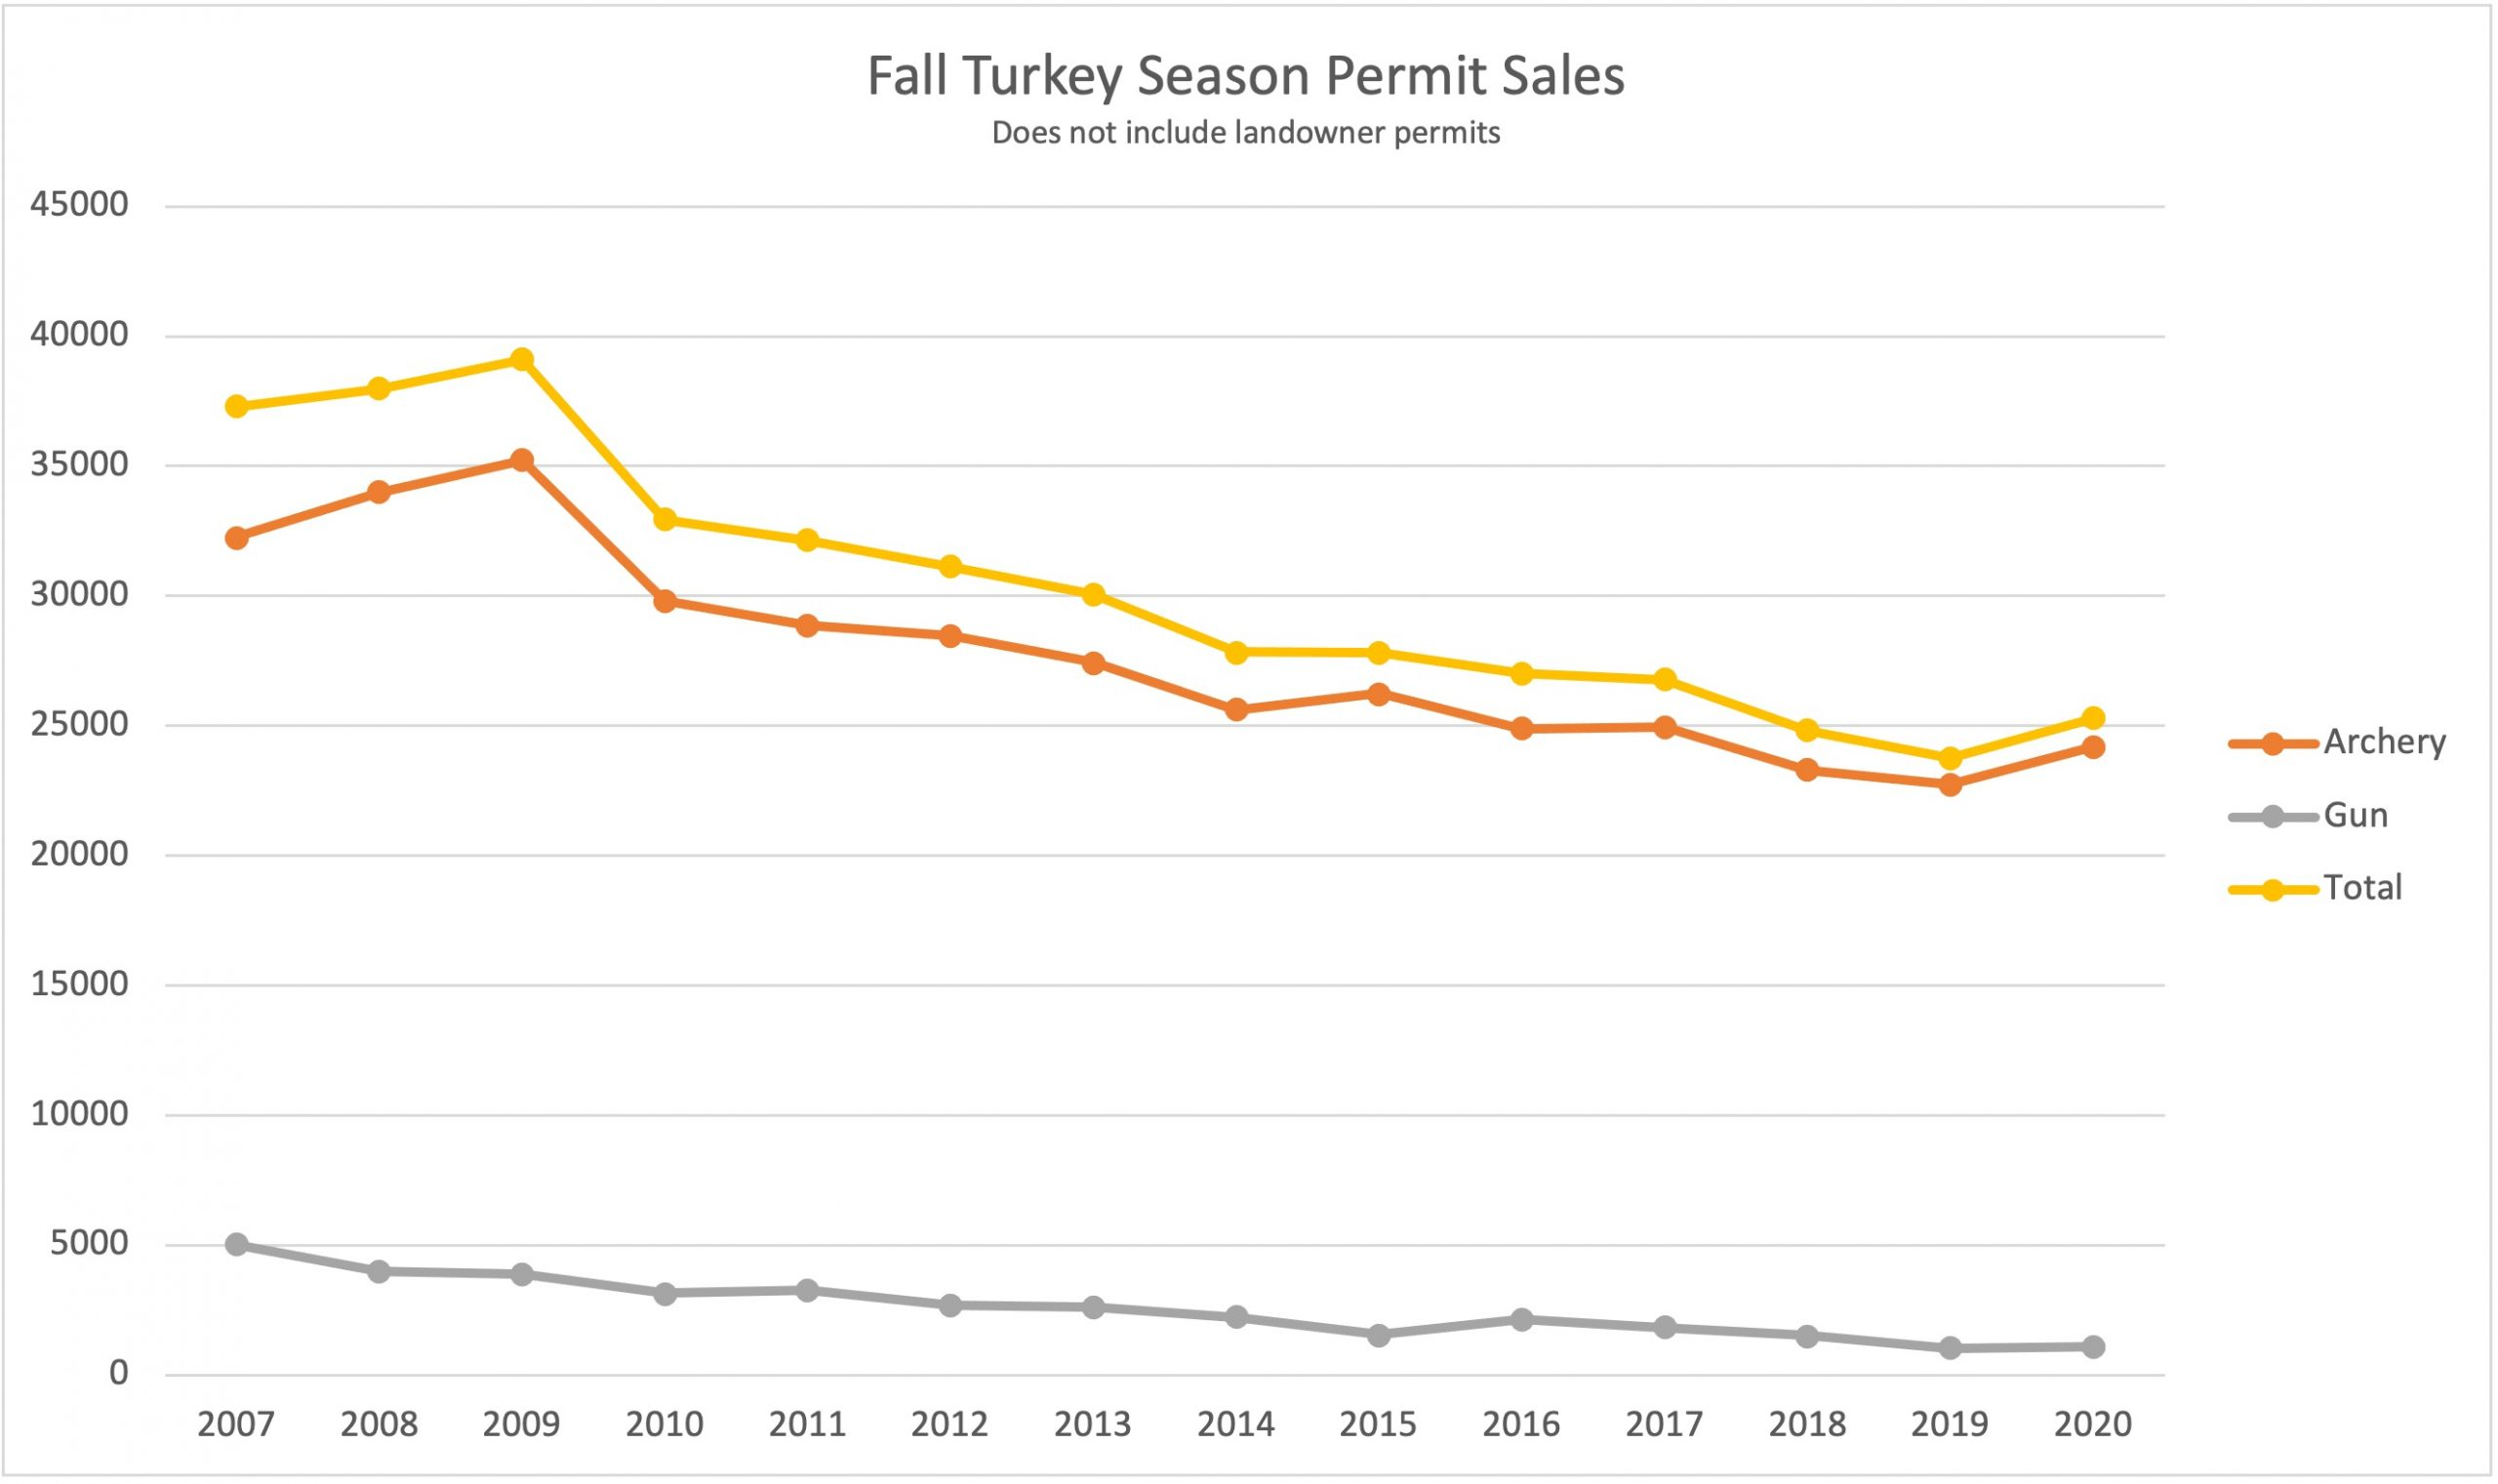 A chart indicating fall turkey season permit sales over the past 13 years.